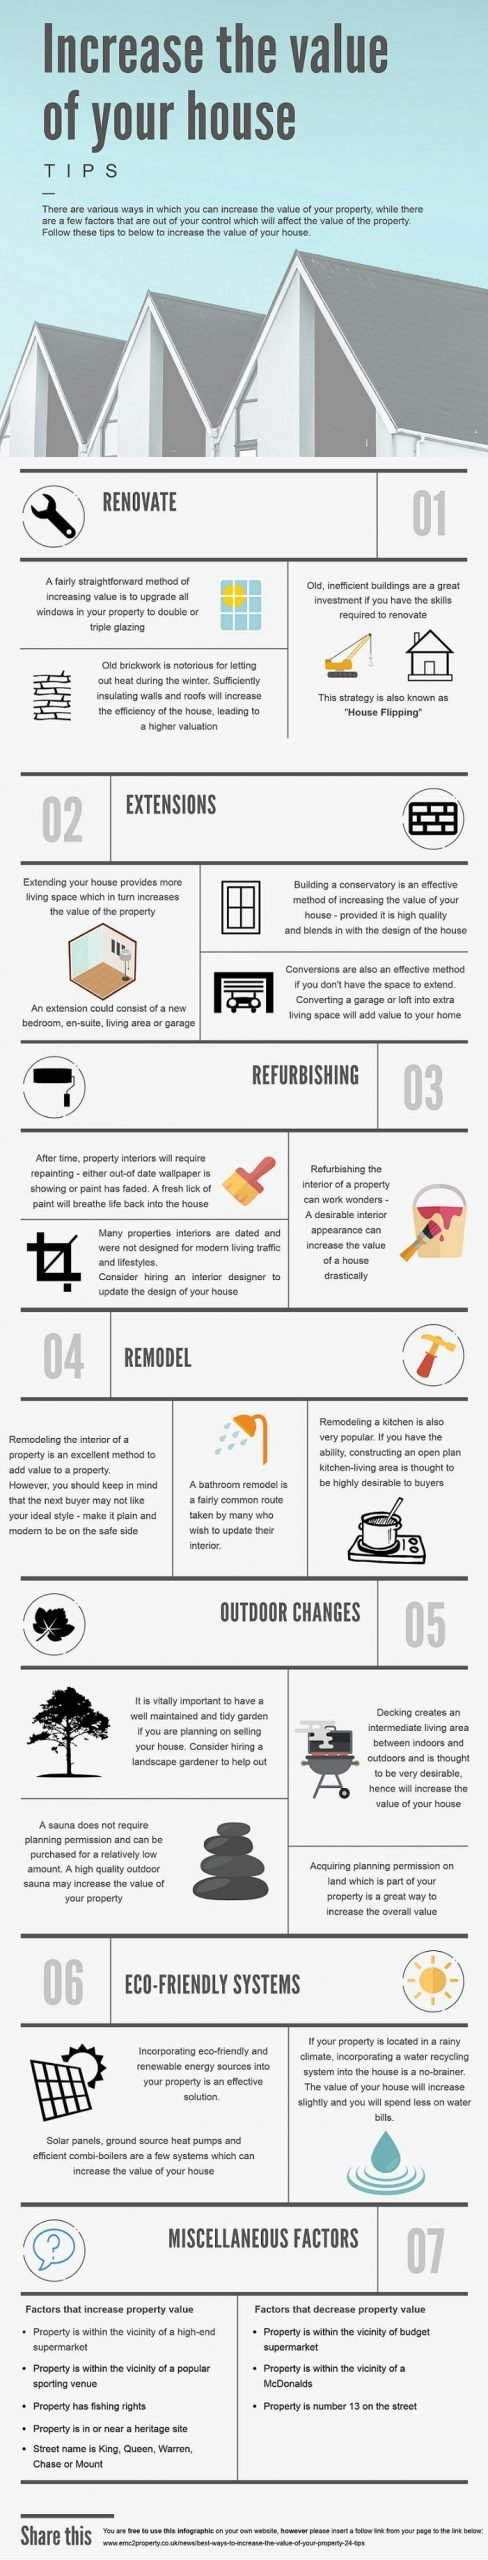 increase the value of your house infographic